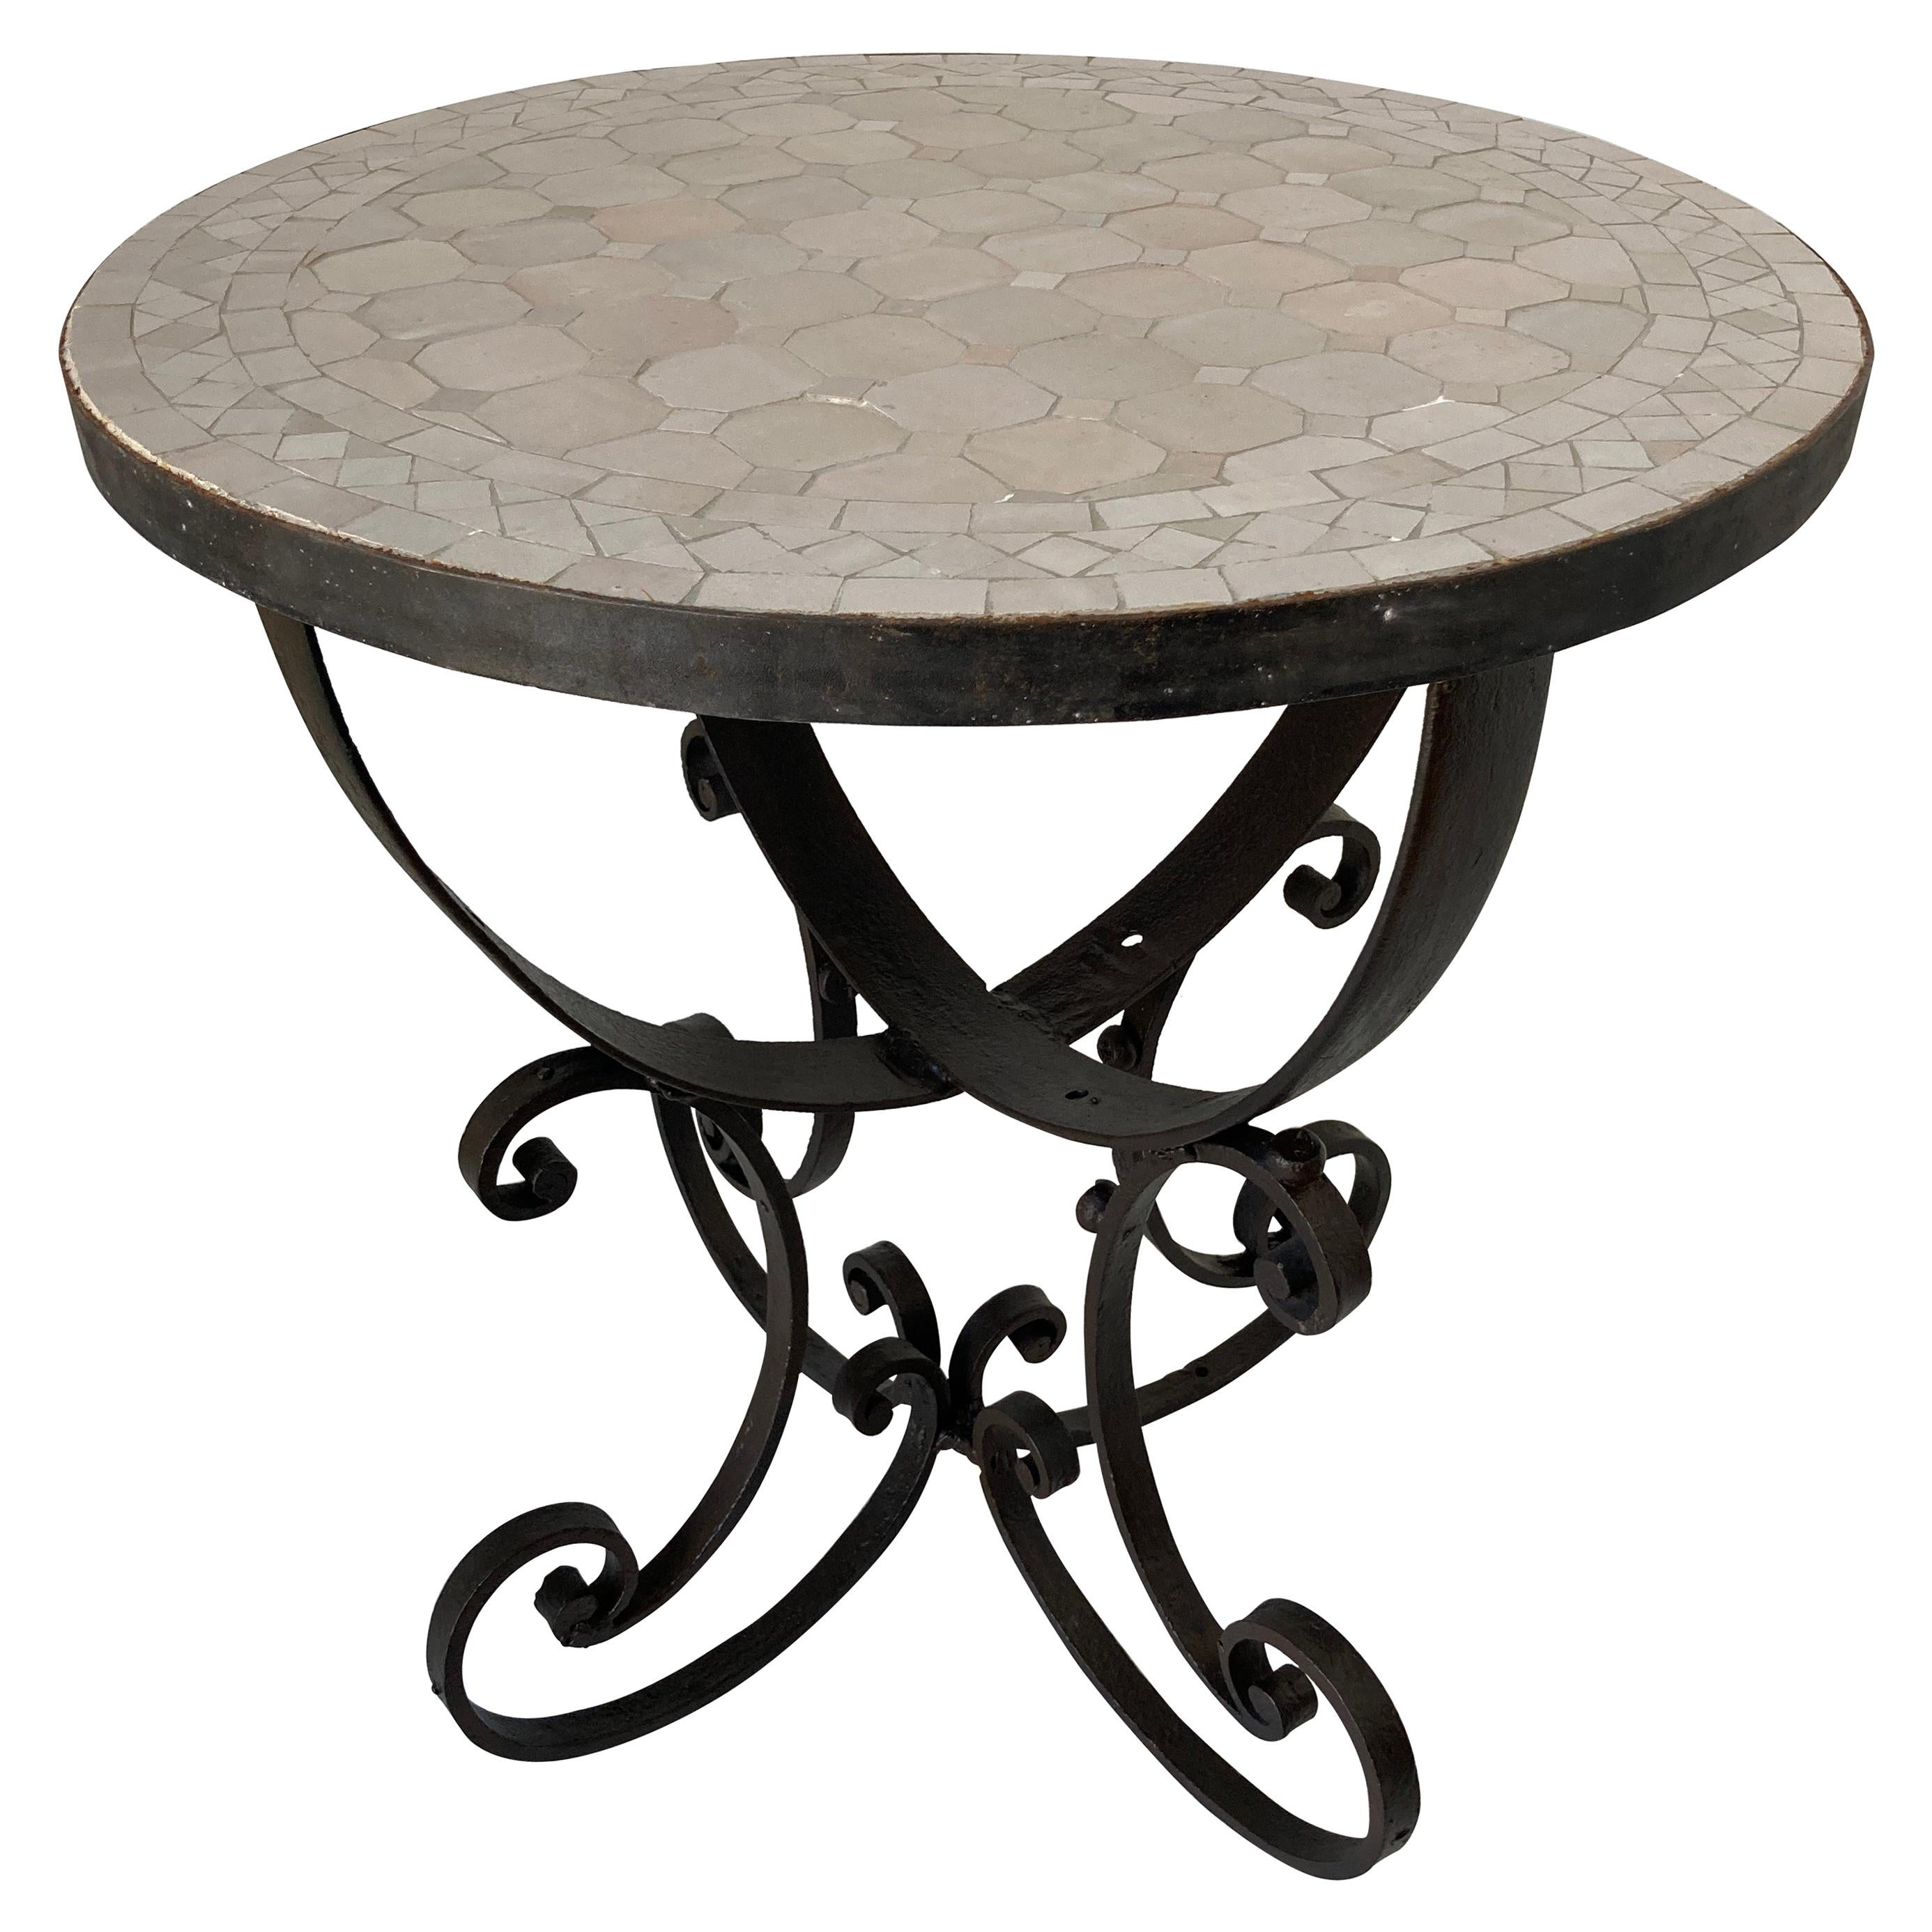 Moroccan Moorish Mosaic Tiles Ivory-White Color Side Table